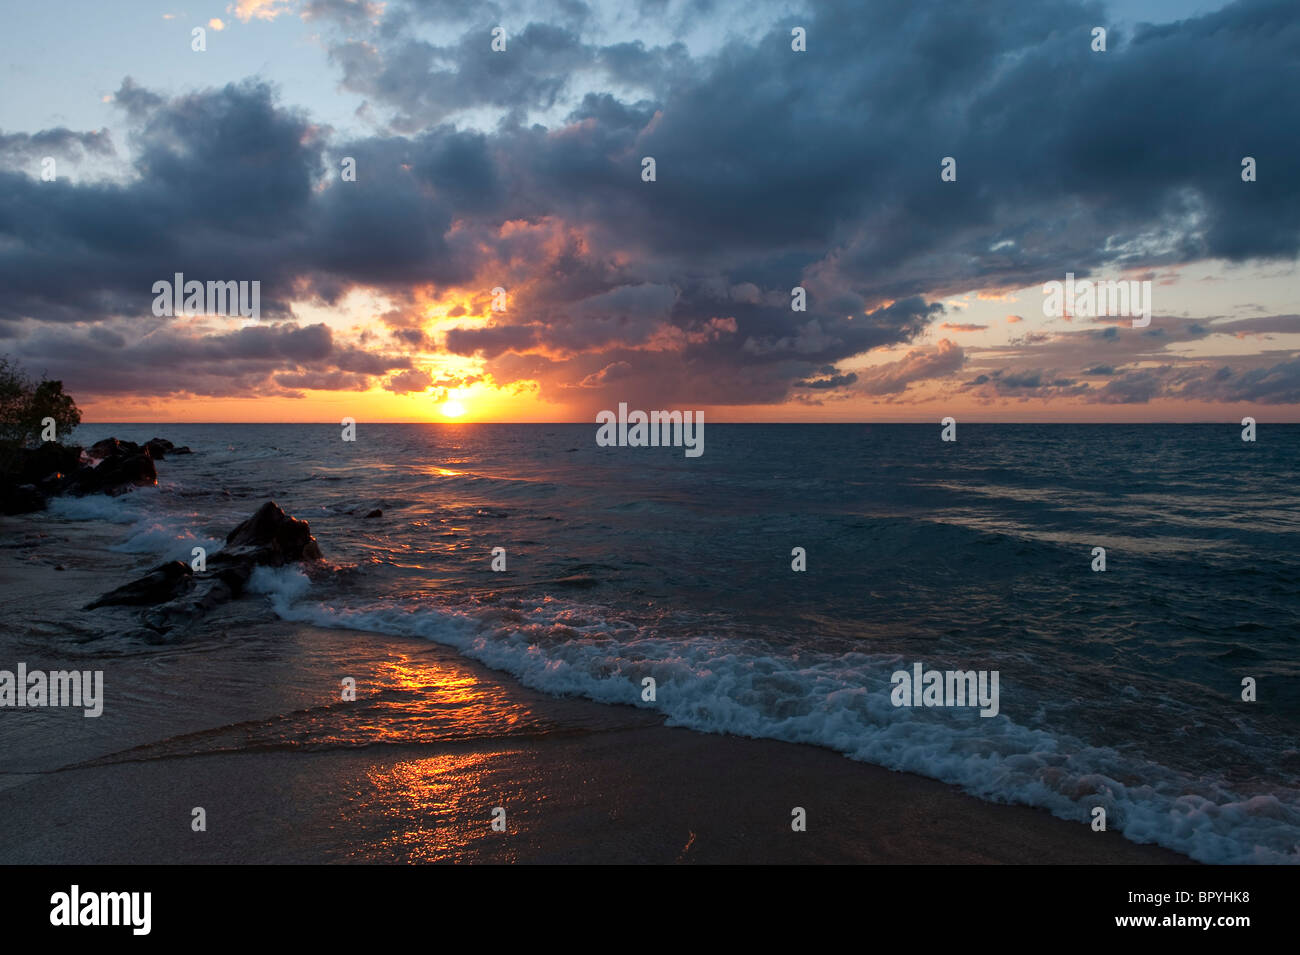 Beach at sunset, Chintheche, Malawi - Stock Image